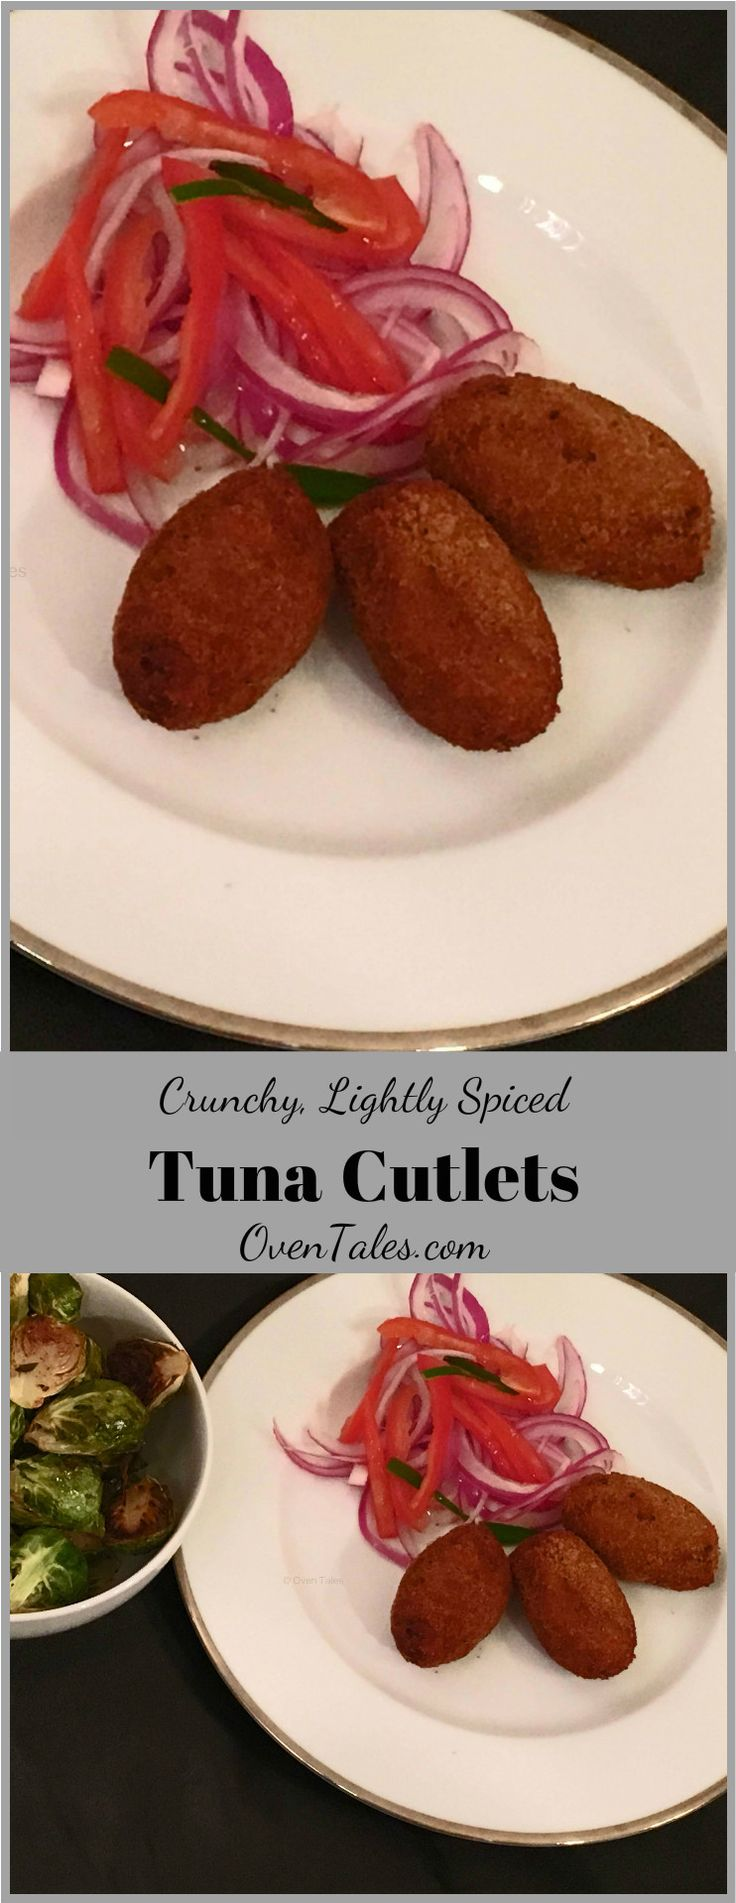 Tuna Cutlets – Seafood Recipes From The Kerala Coast. These lightly spiced Tuna cutlets are a crunchy and satisfying appetizer or snack.